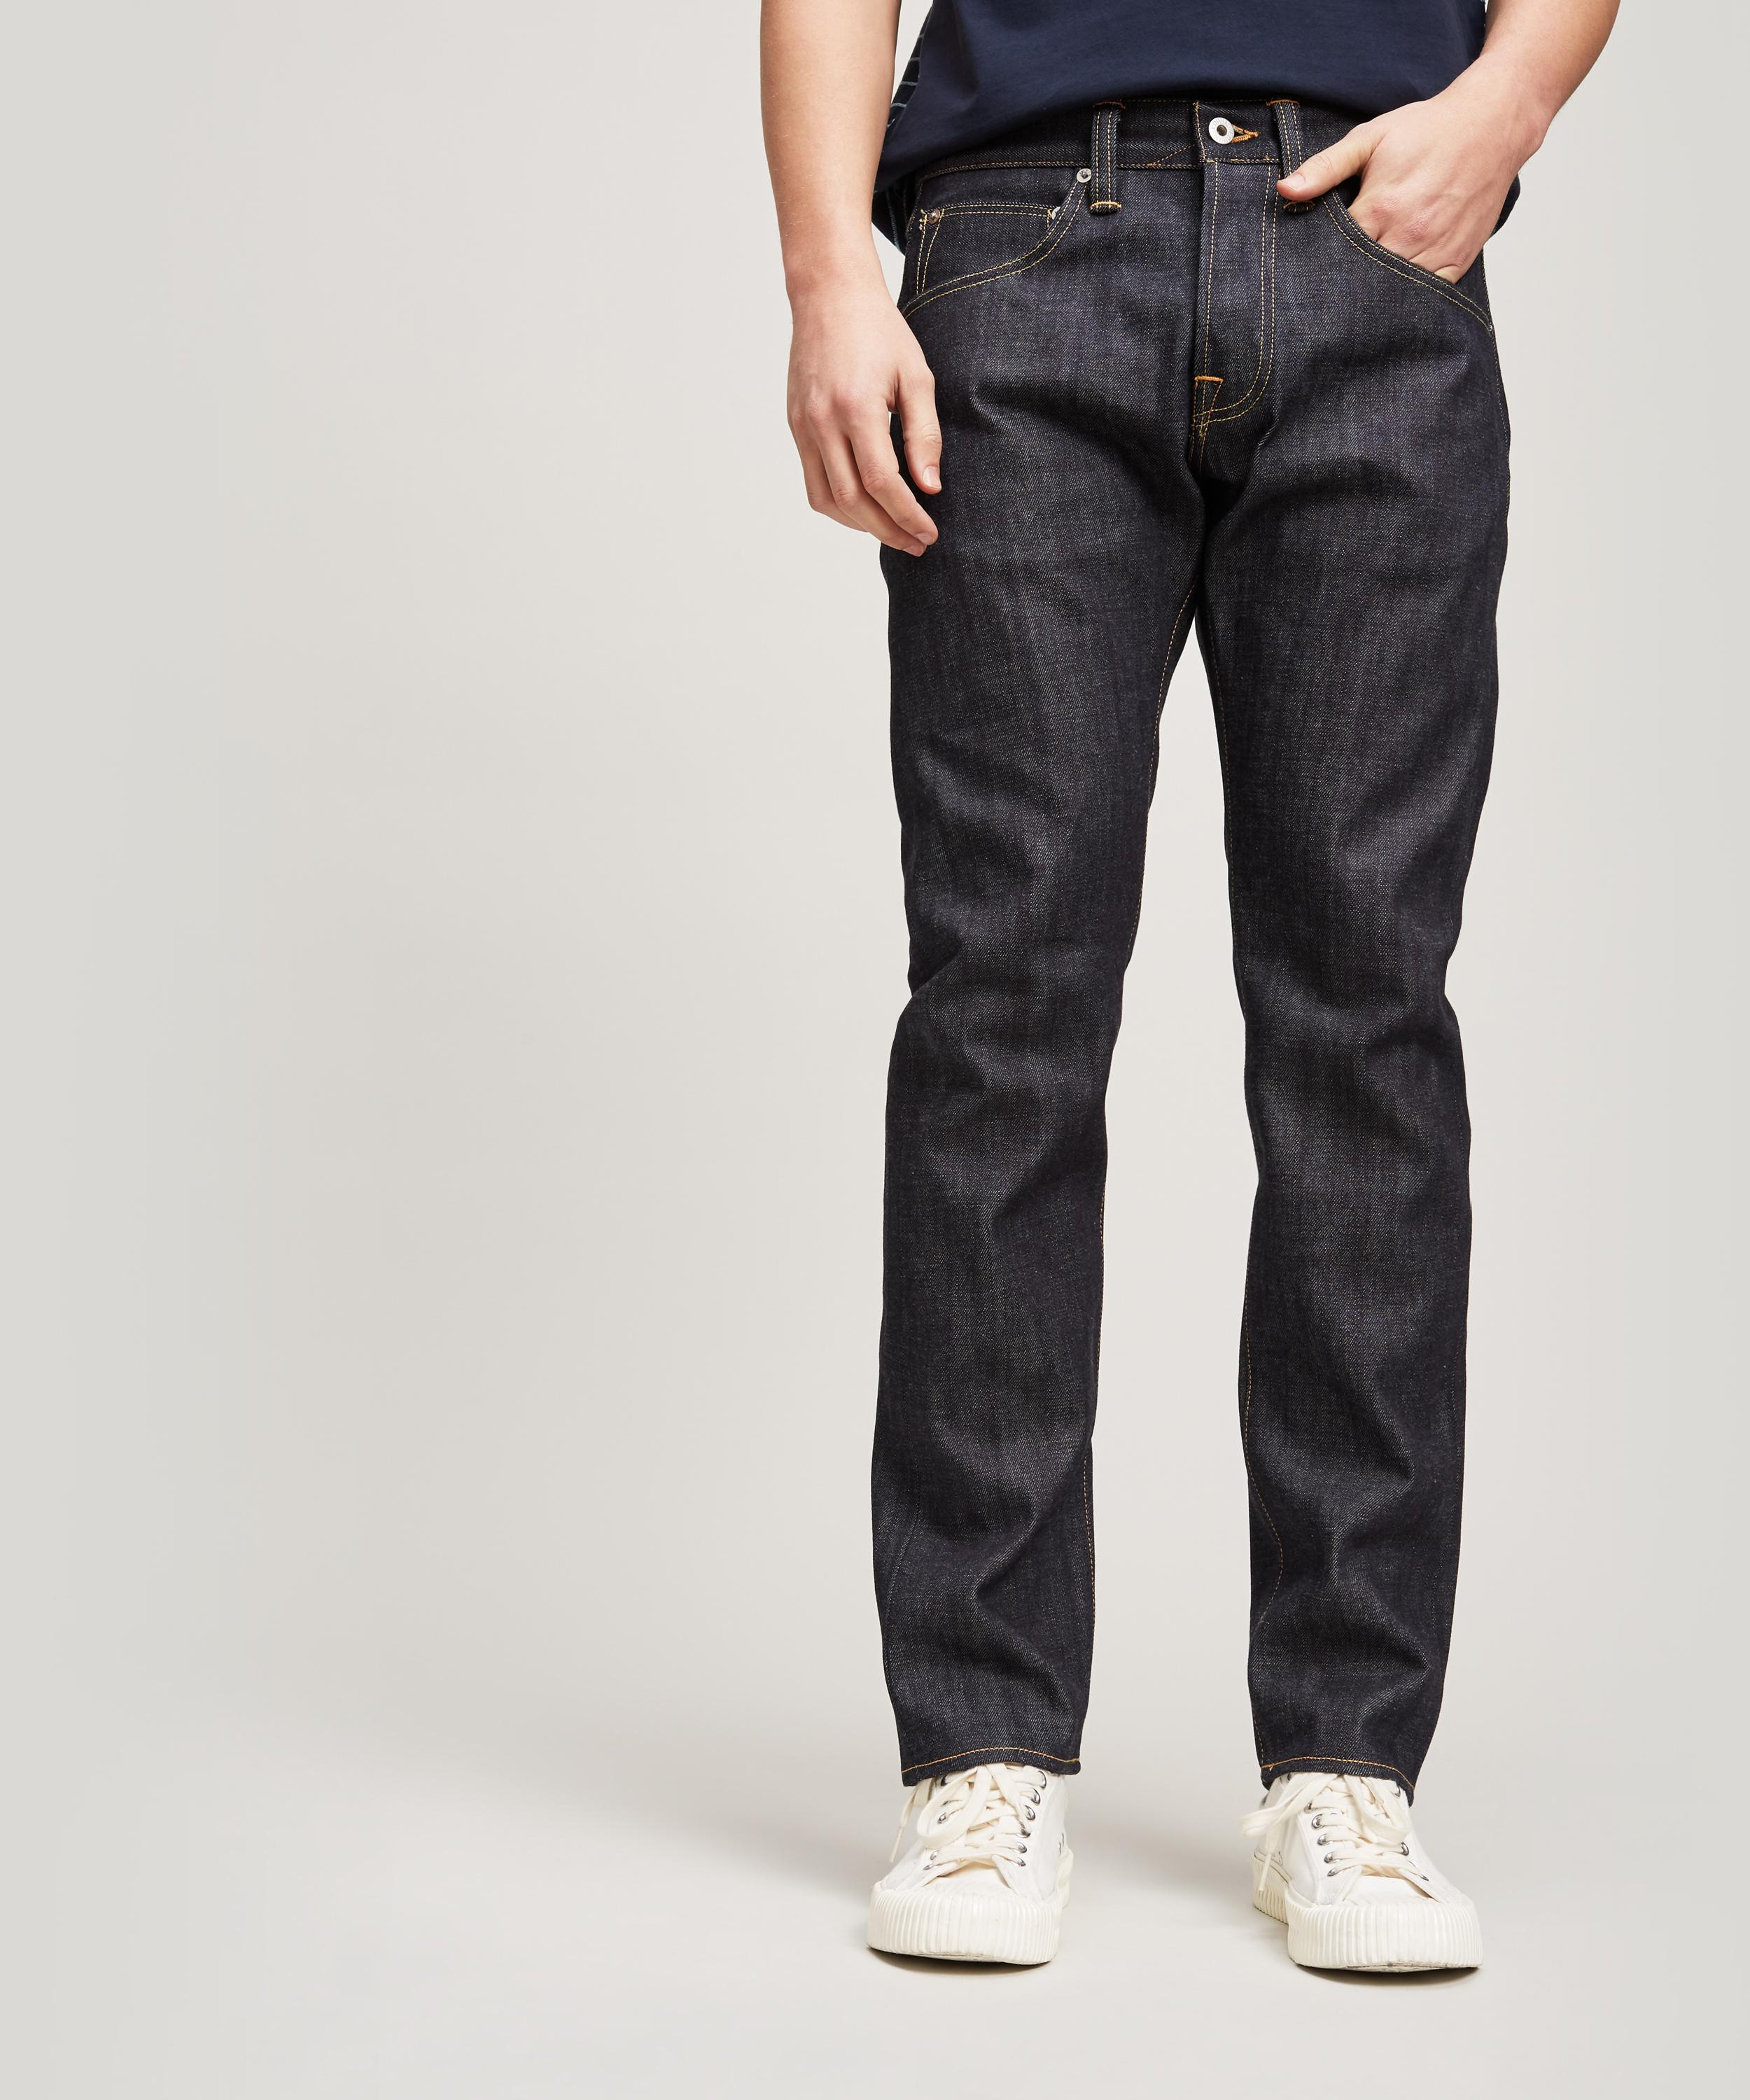 91378473 Edwin Ed55 Red Selvedge Unwashed Jeans in Blue for Men - Lyst